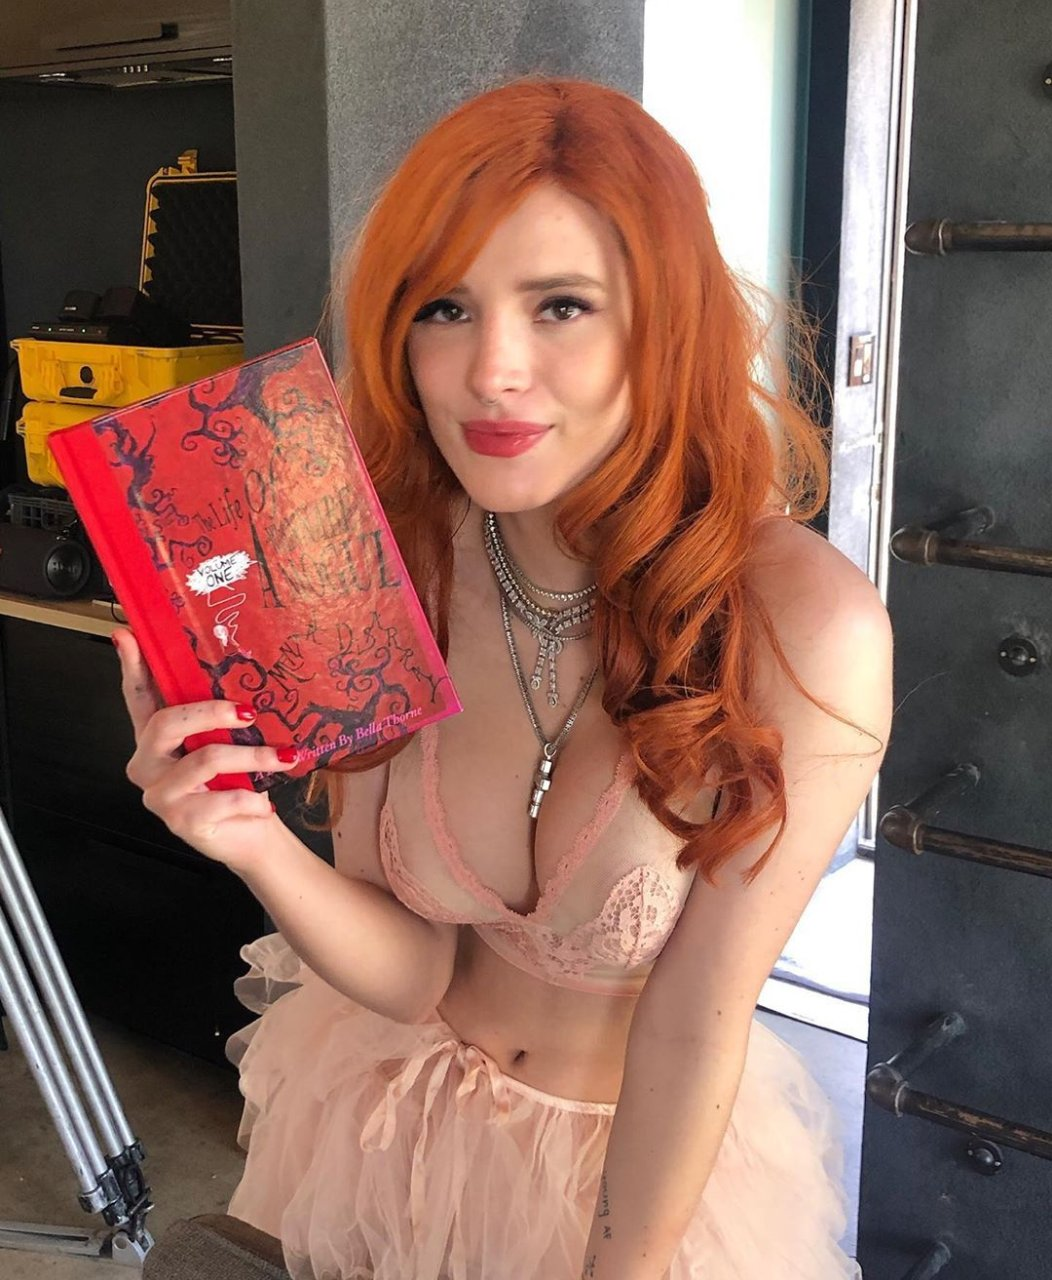 remarkable, this very an interesting pantyhose fetish mine the theme